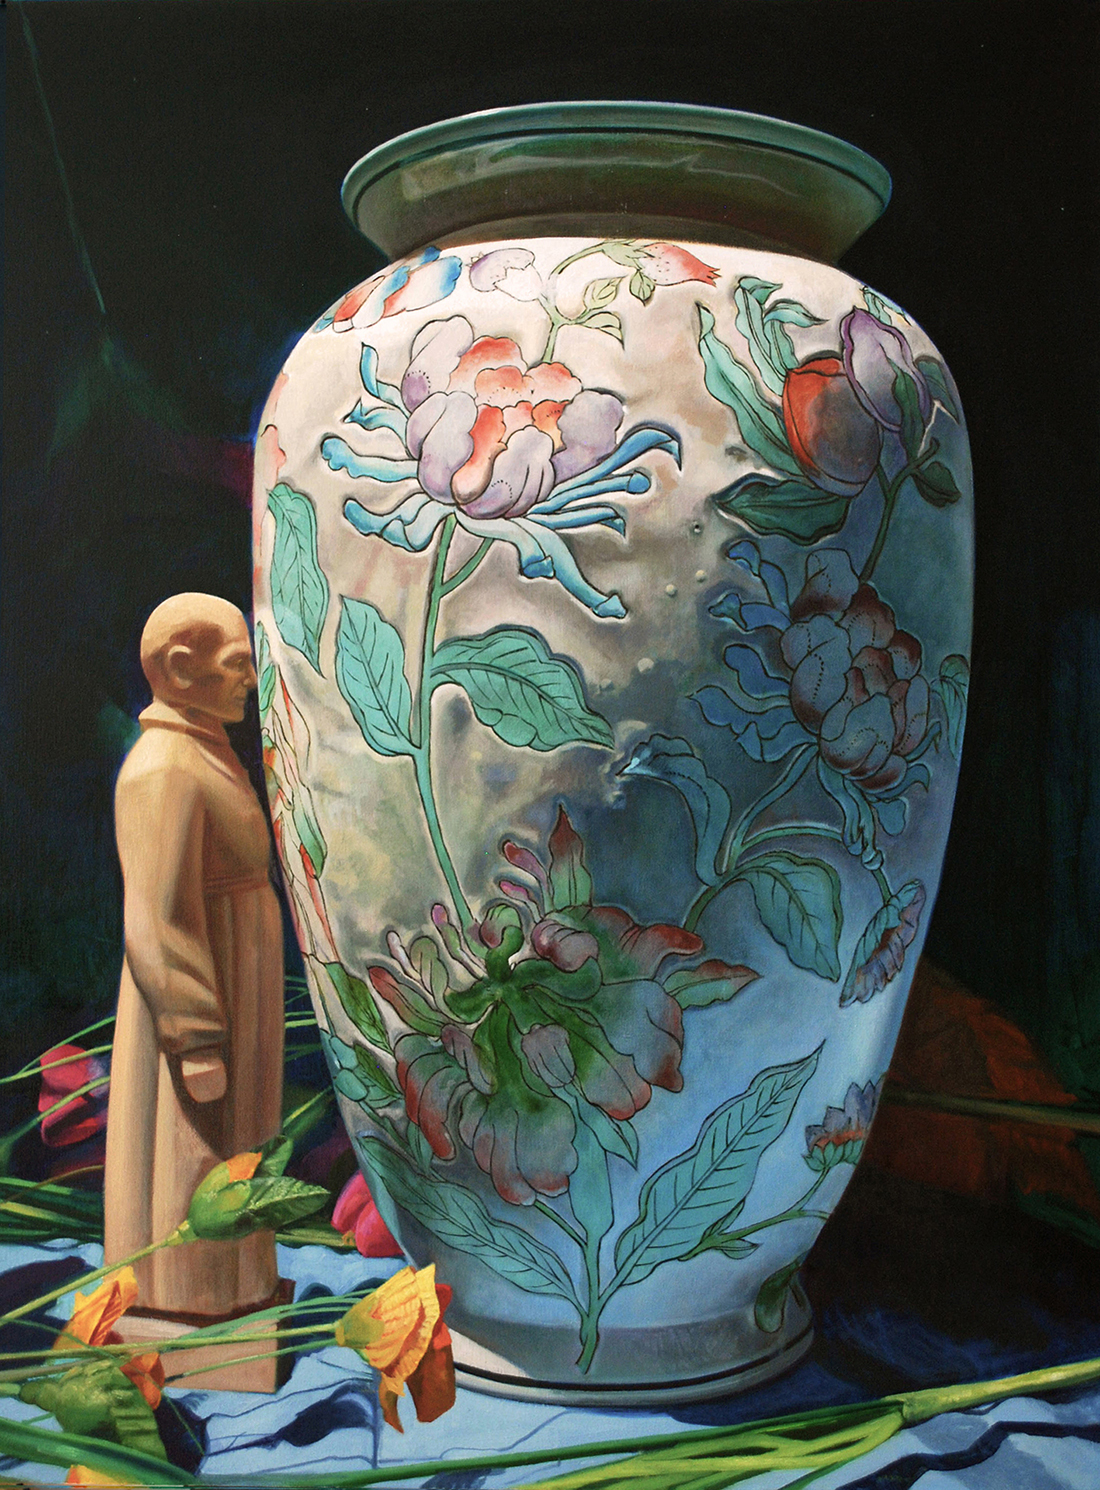 Maureen Paxton oil painting of a small priest standing, forehead touching, against a large Chinese vase decorated with flowers